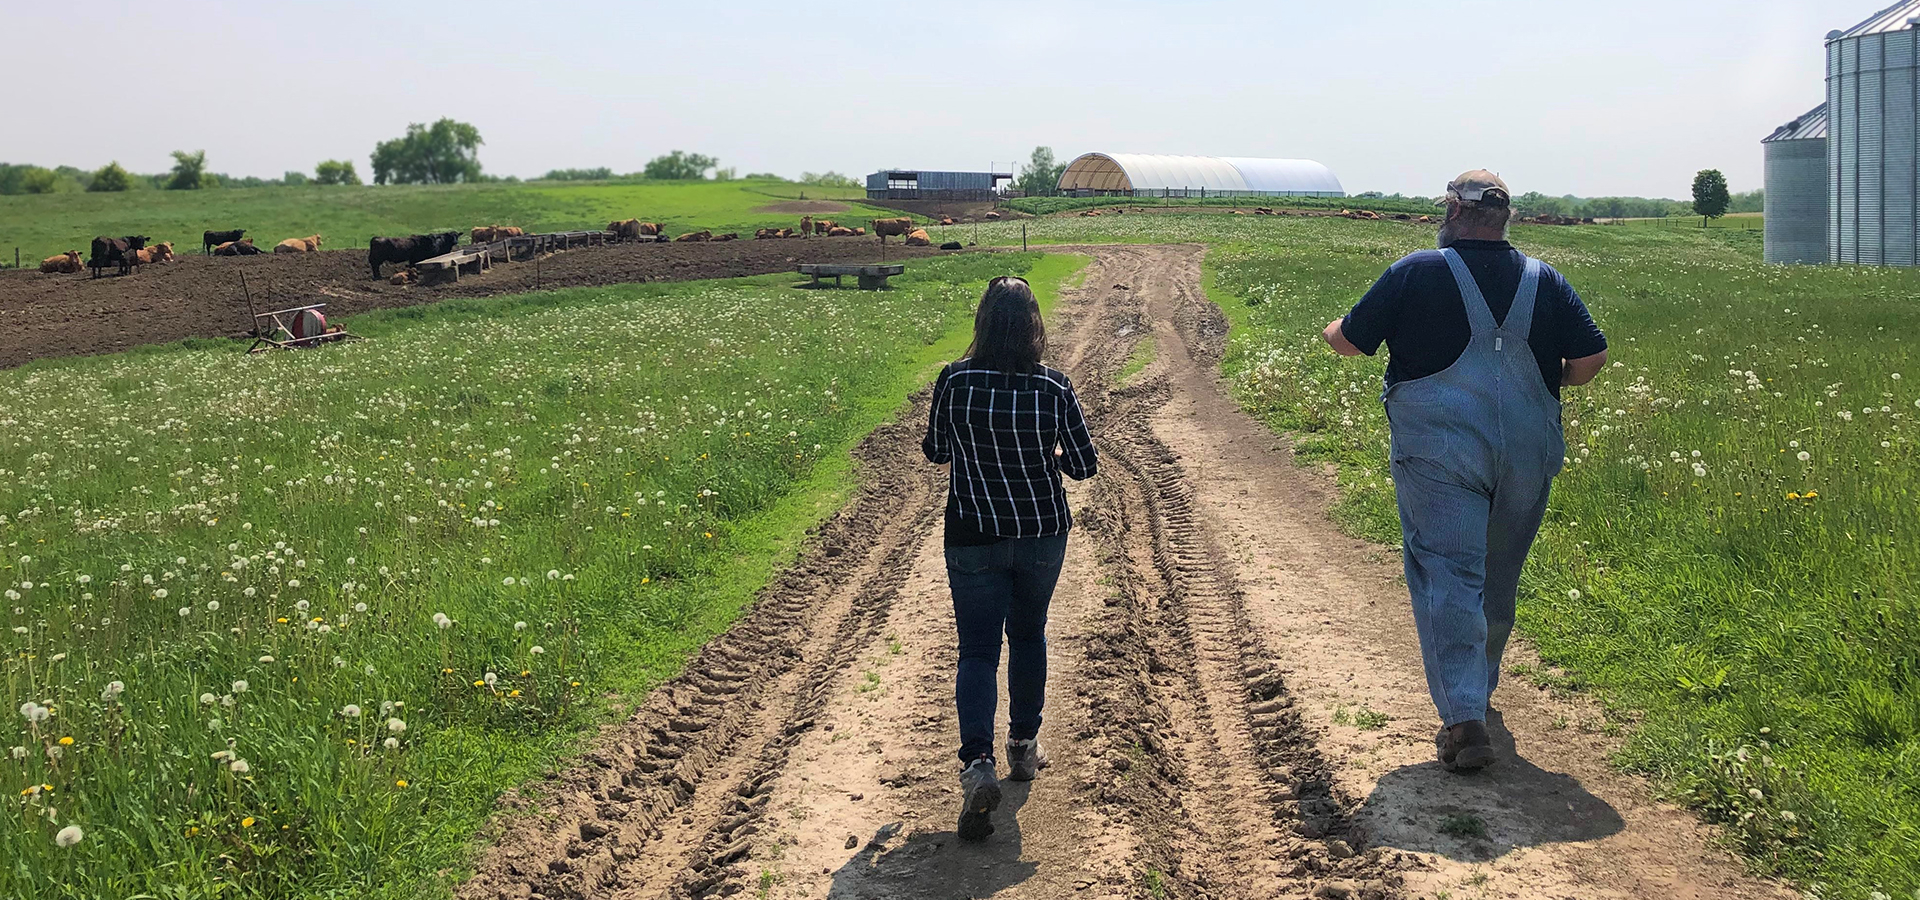 Two people walking down a dirt road in the countryside